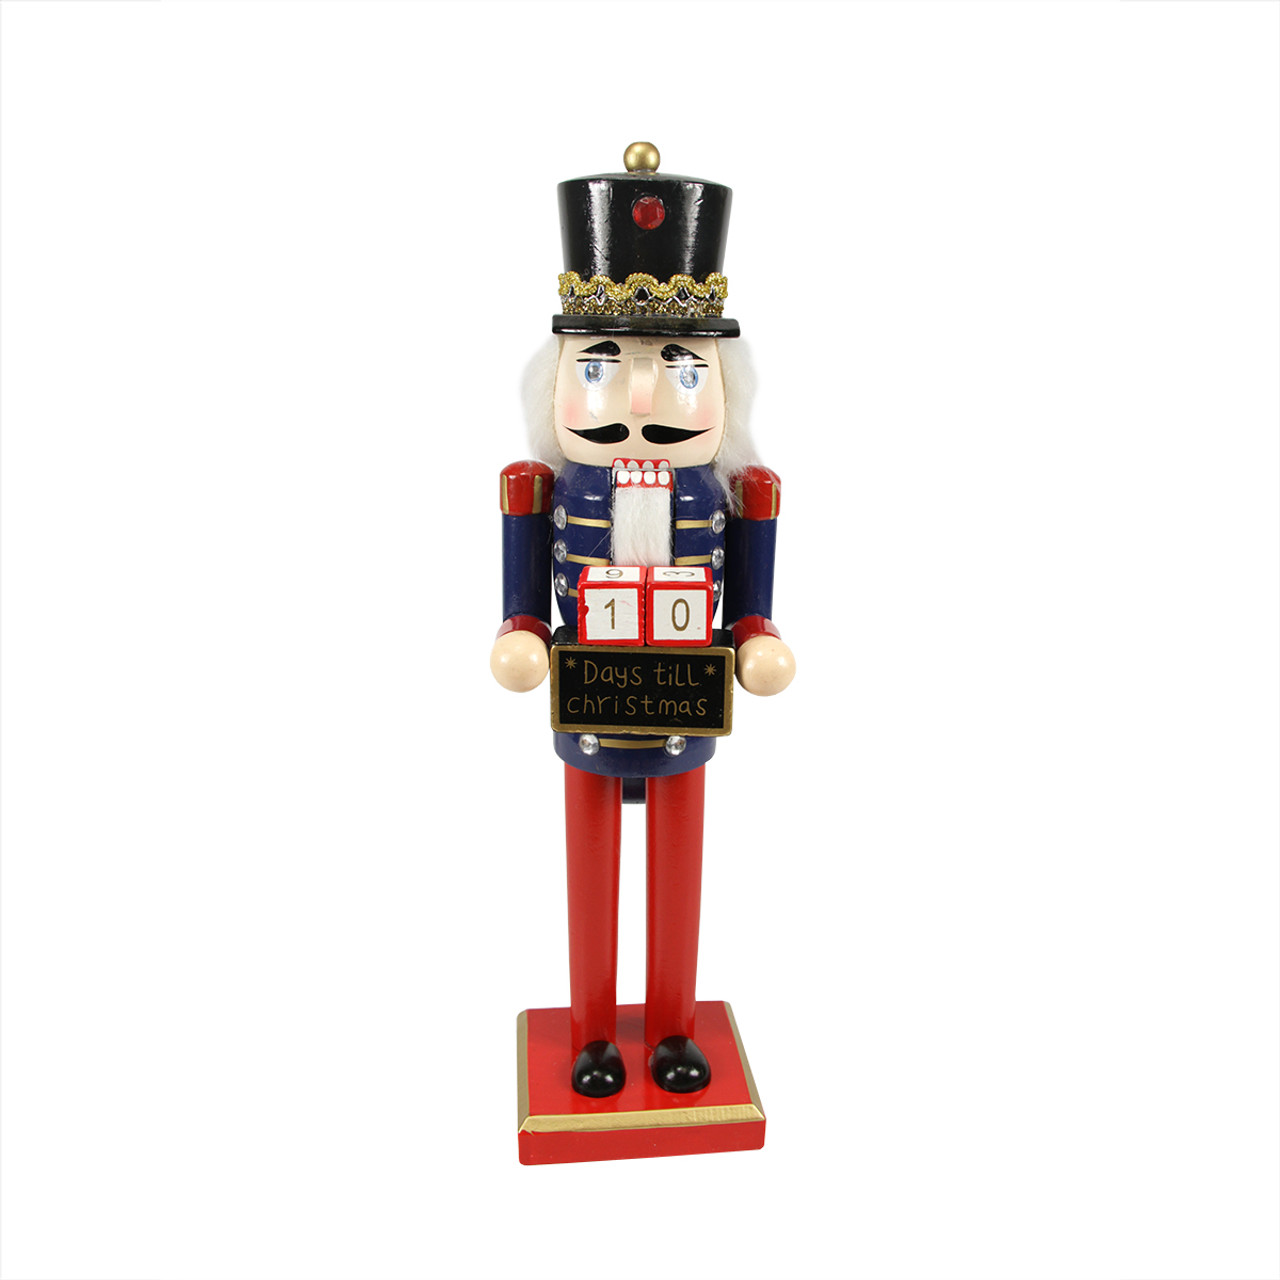 14 decorative wooden red blue gold nutcracker w christmas countdown sign christmas central - Countdown Till Christmas Decoration